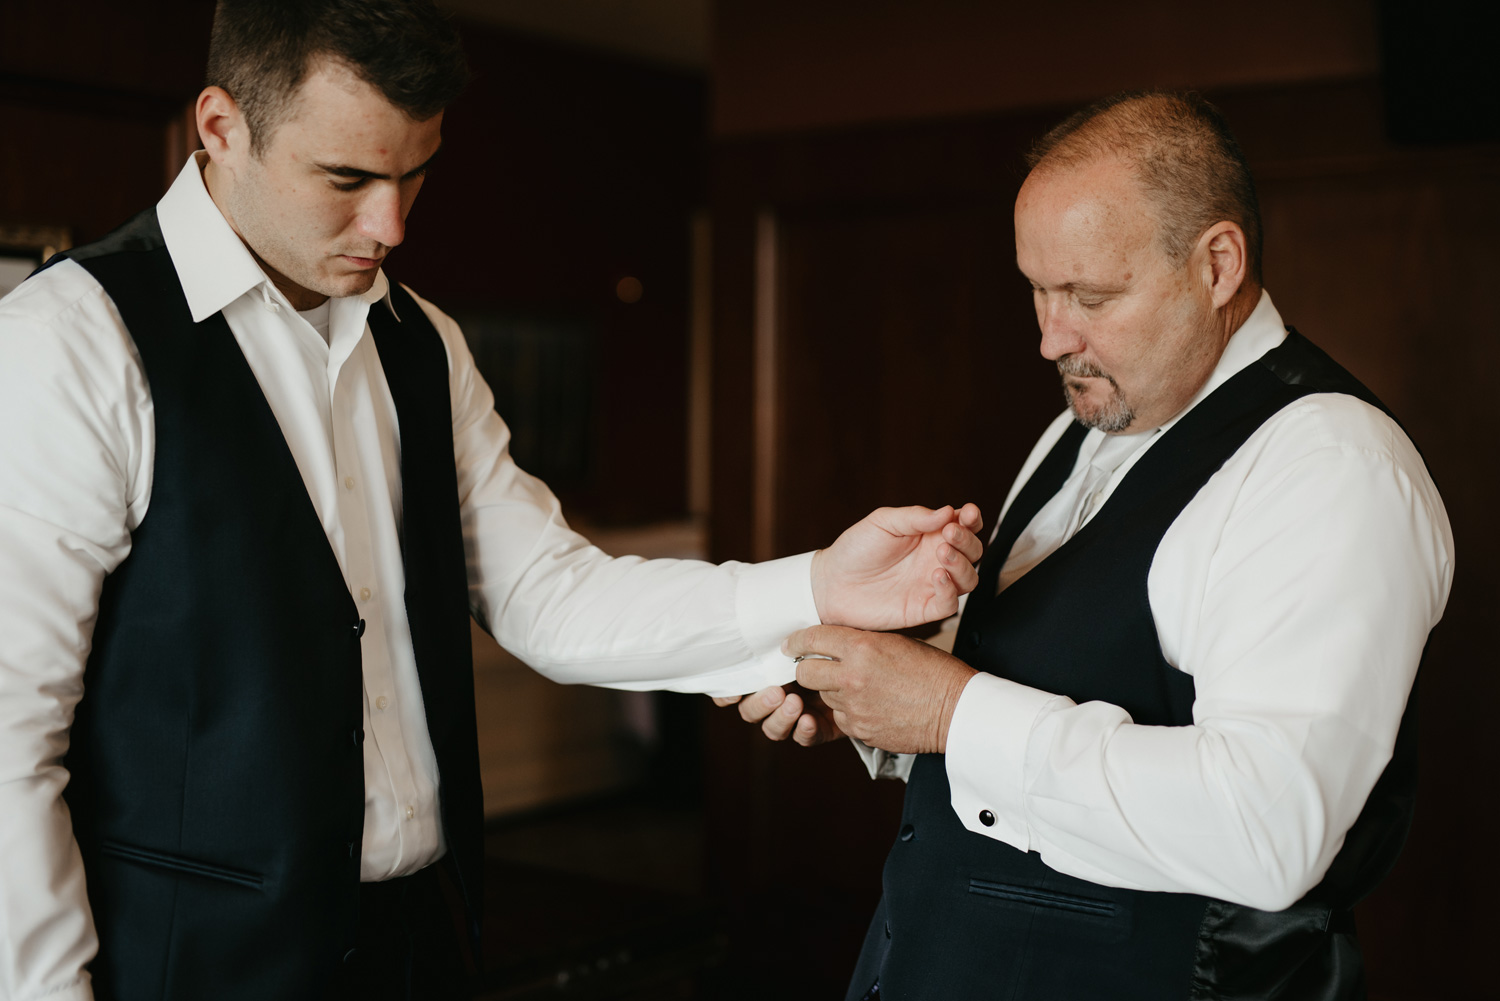 Groom getting ready with dad buttoning up sleeves